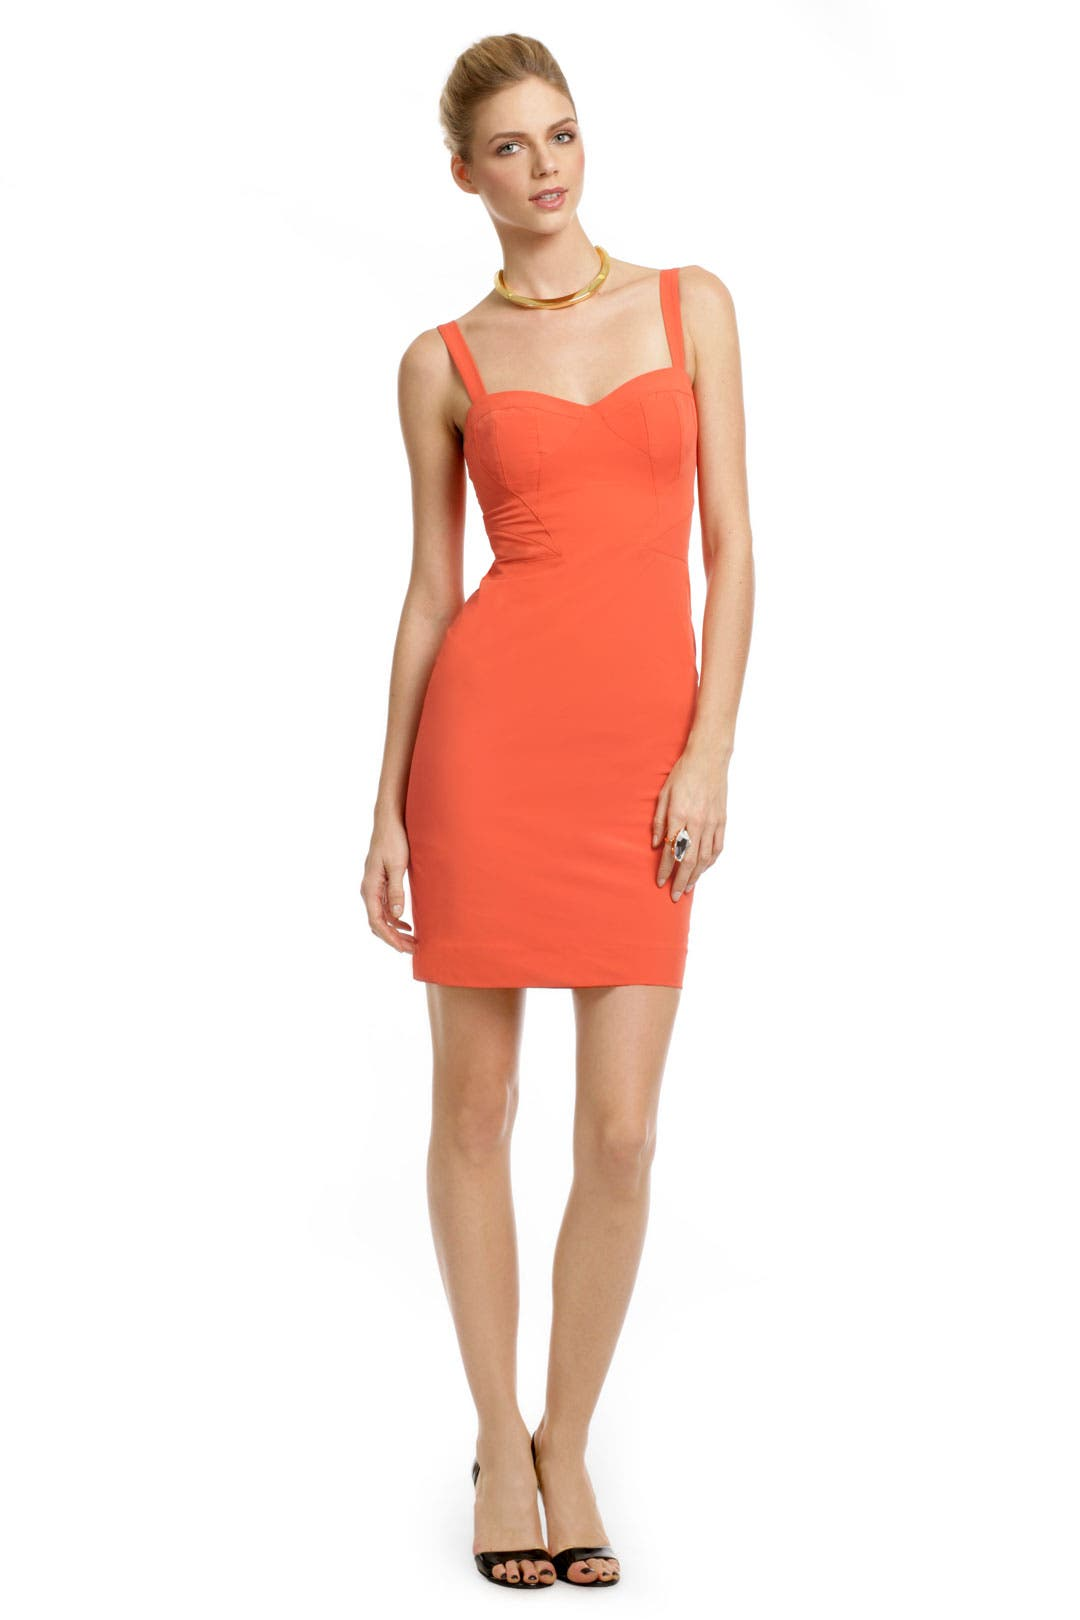 Mercury Orange Sheath by Z Spoke Zac Posen